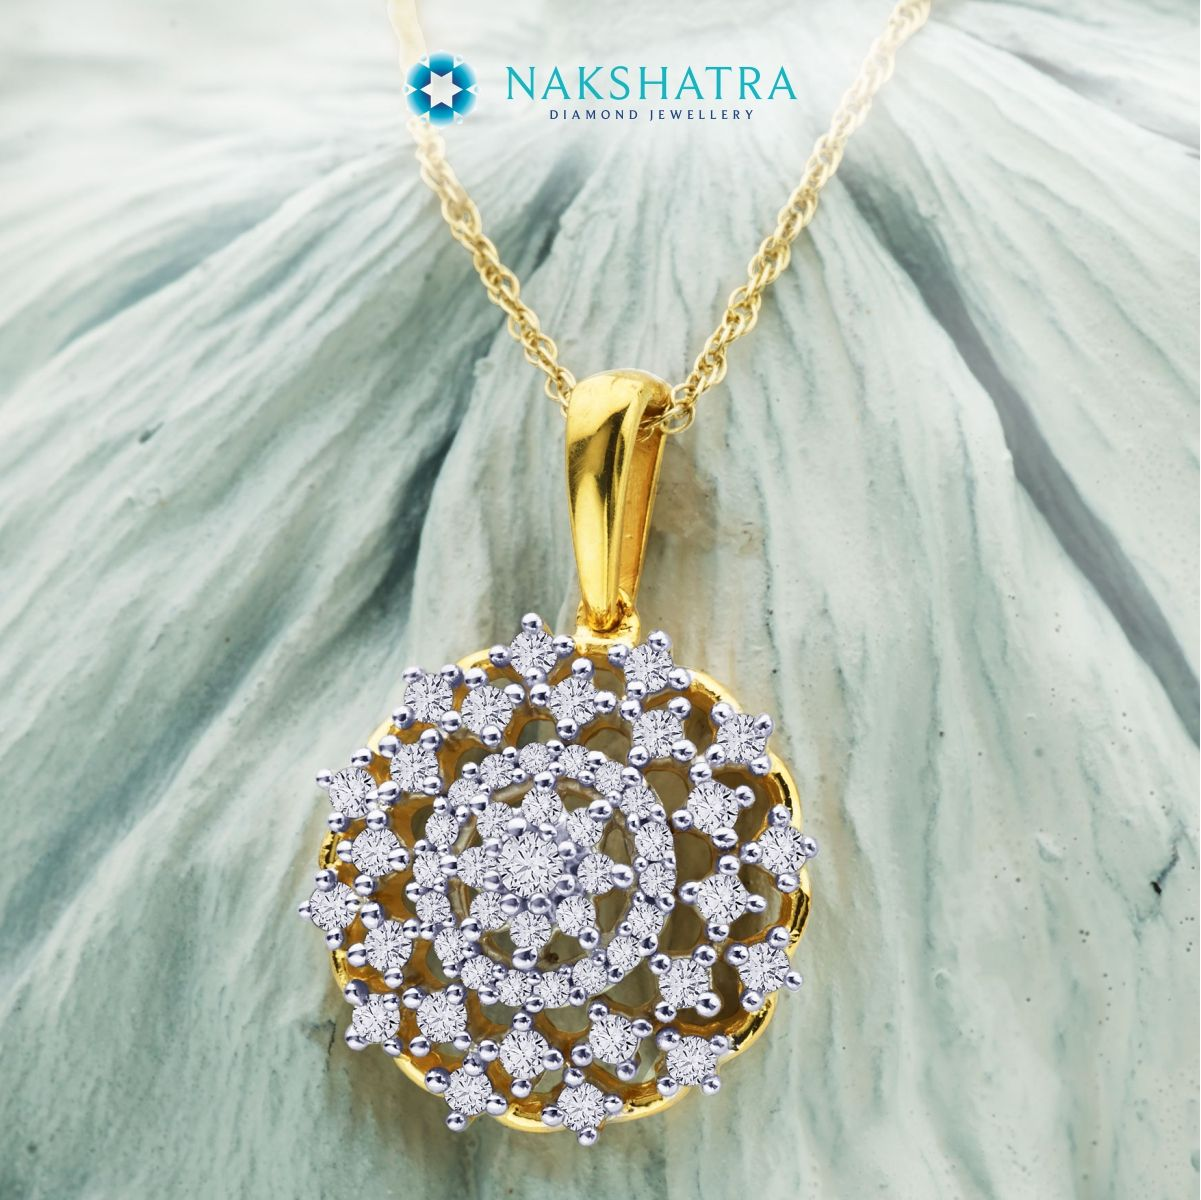 An intricate ‪#‎diamond‬ pendant from ‪#‎Nakshatra‬ that evokes glorious images of the Sun, the stars and the symmetry of planetary movement. Divine beauty! ‪#‎Pendant‬ ‪#‎DiamondJewellery‬ ‪#‎DiamondPendant‬